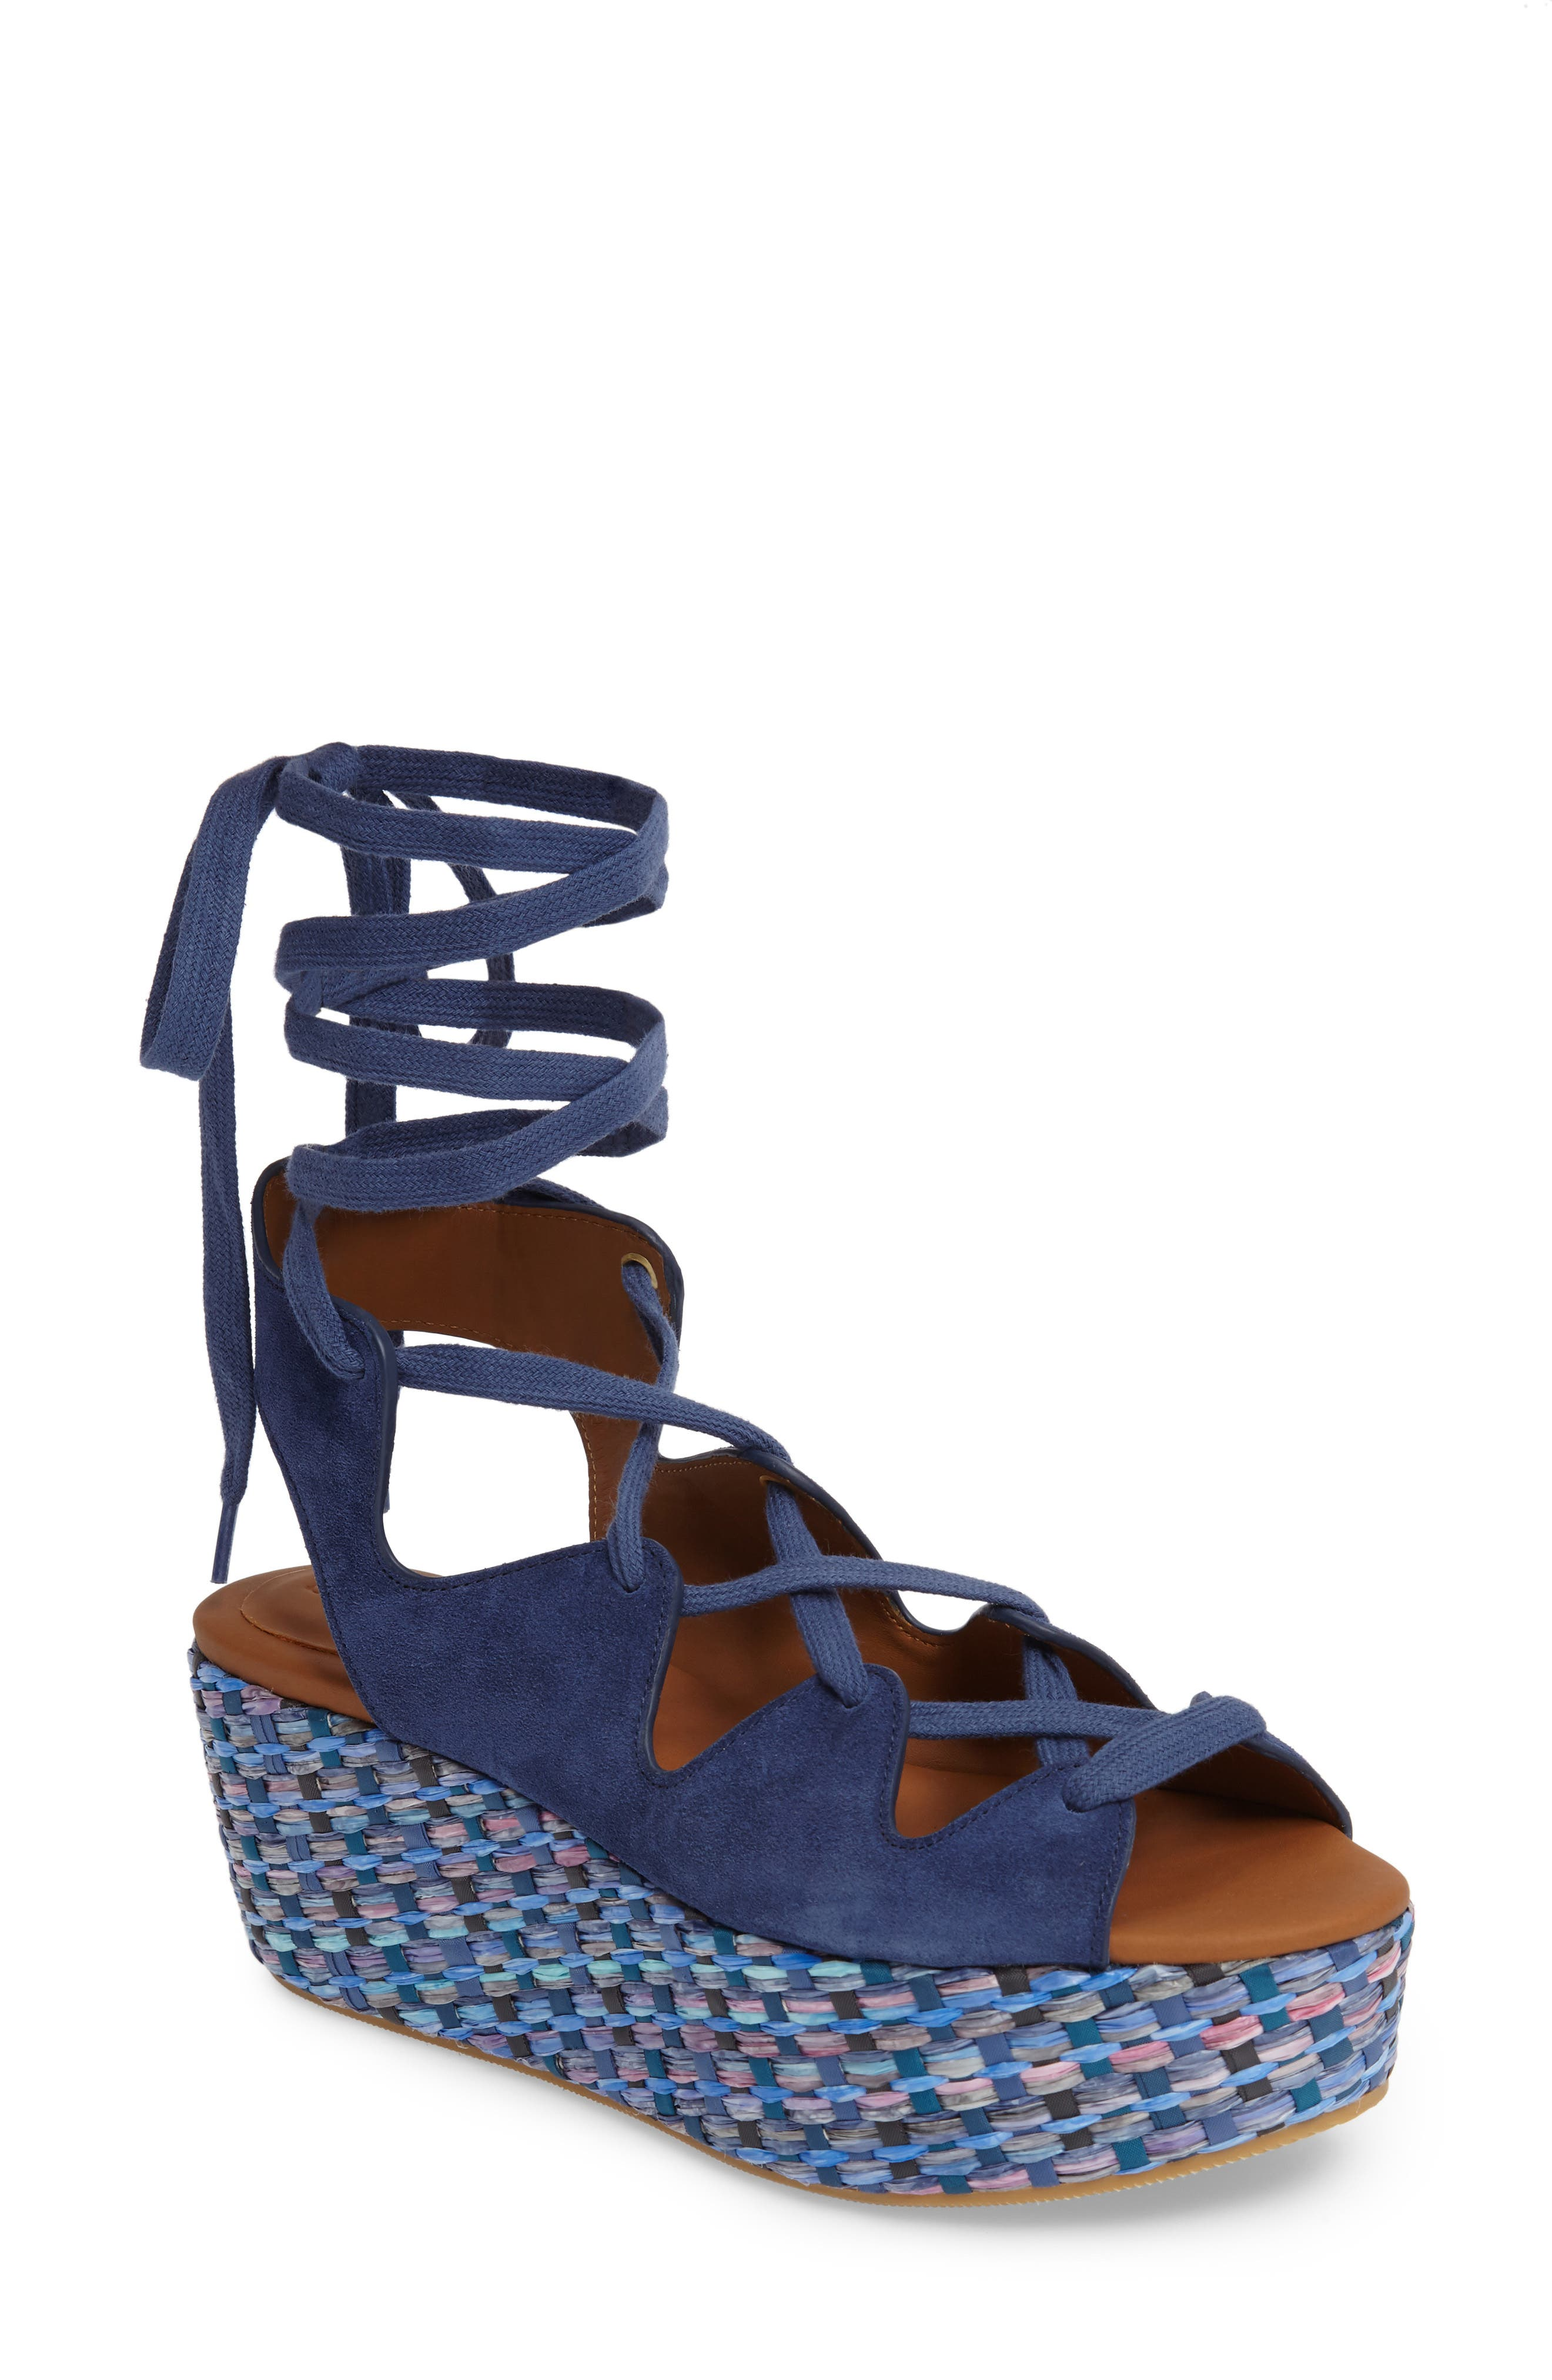 'Liana' Platform Wedge Sandal,                         Main,                         color, Sugar